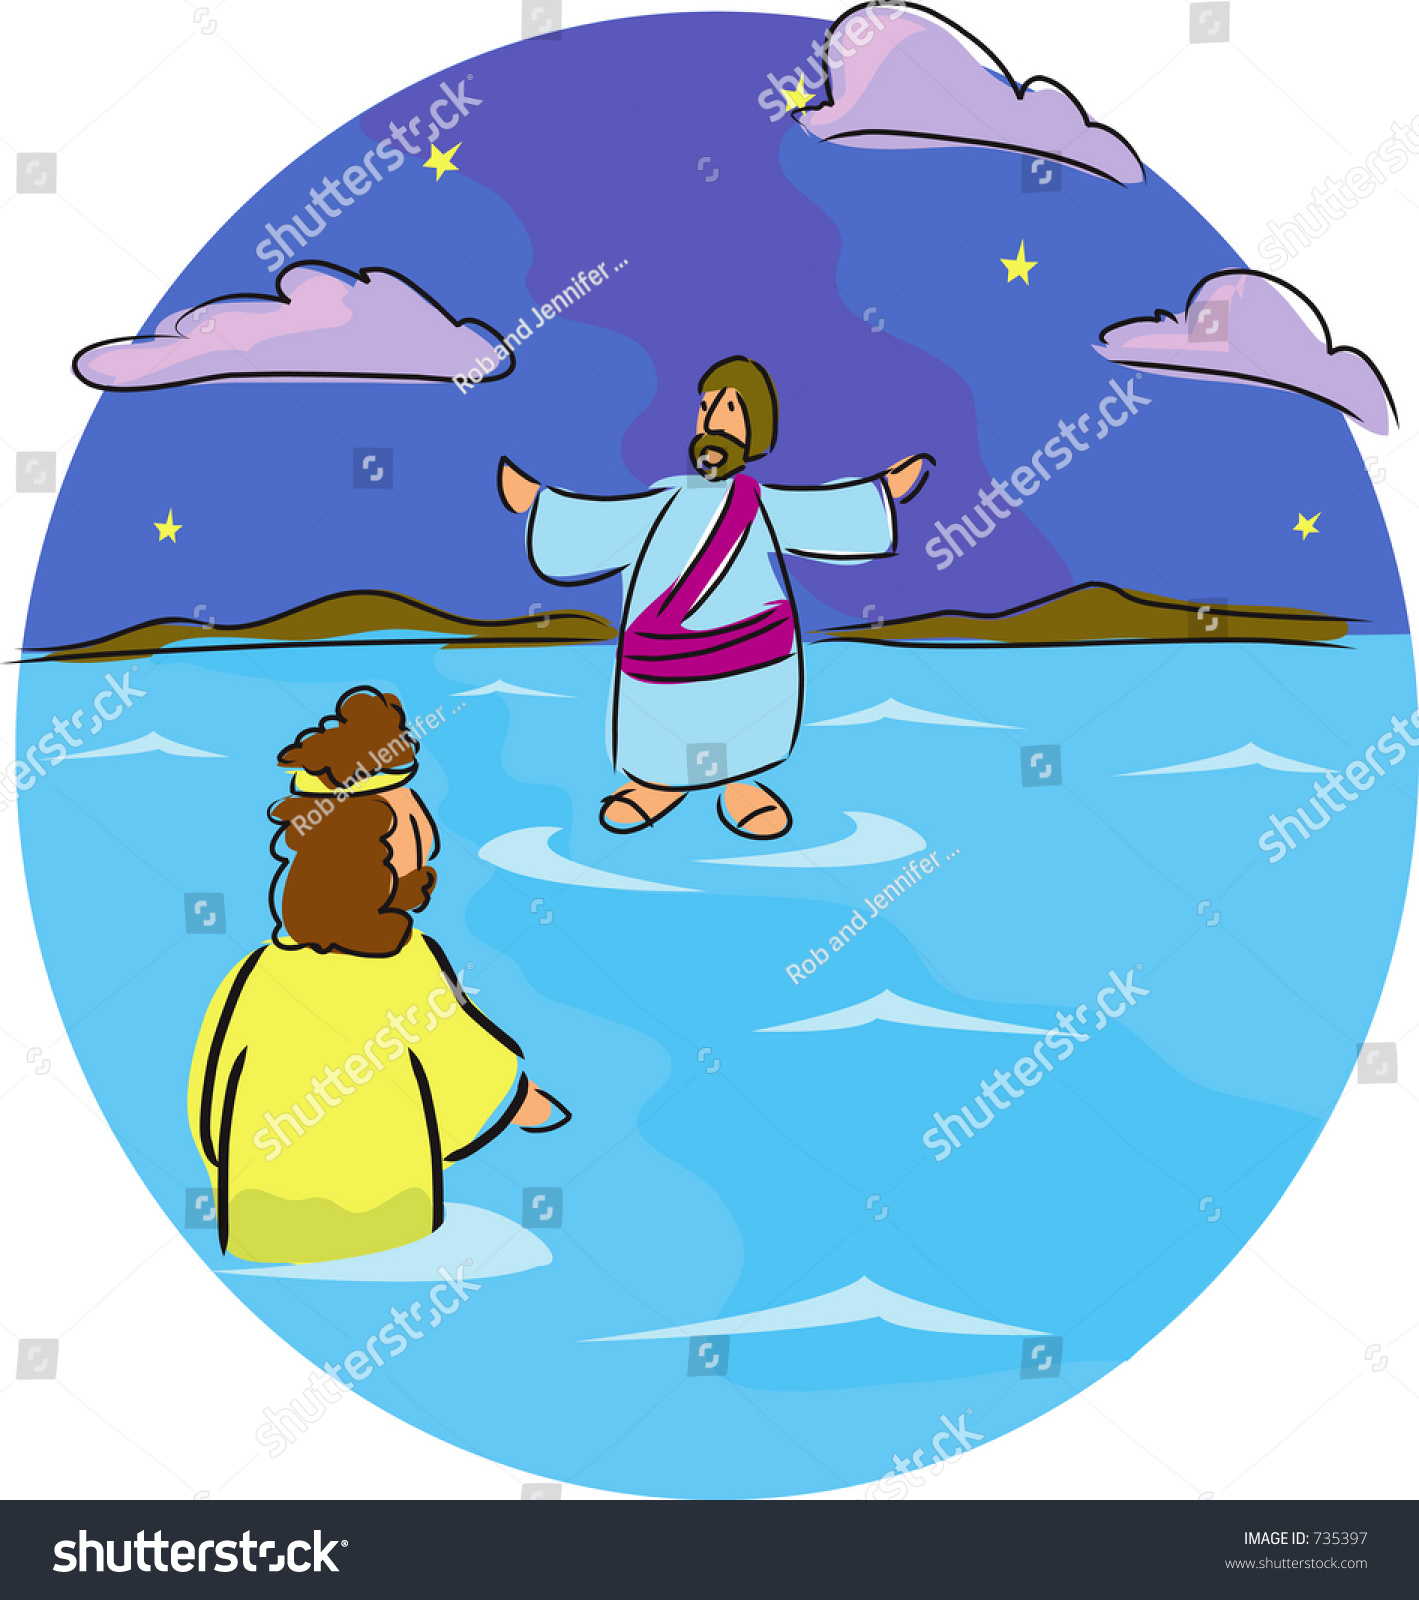 Jesus walks on water clipart 7 » Clipart Station.